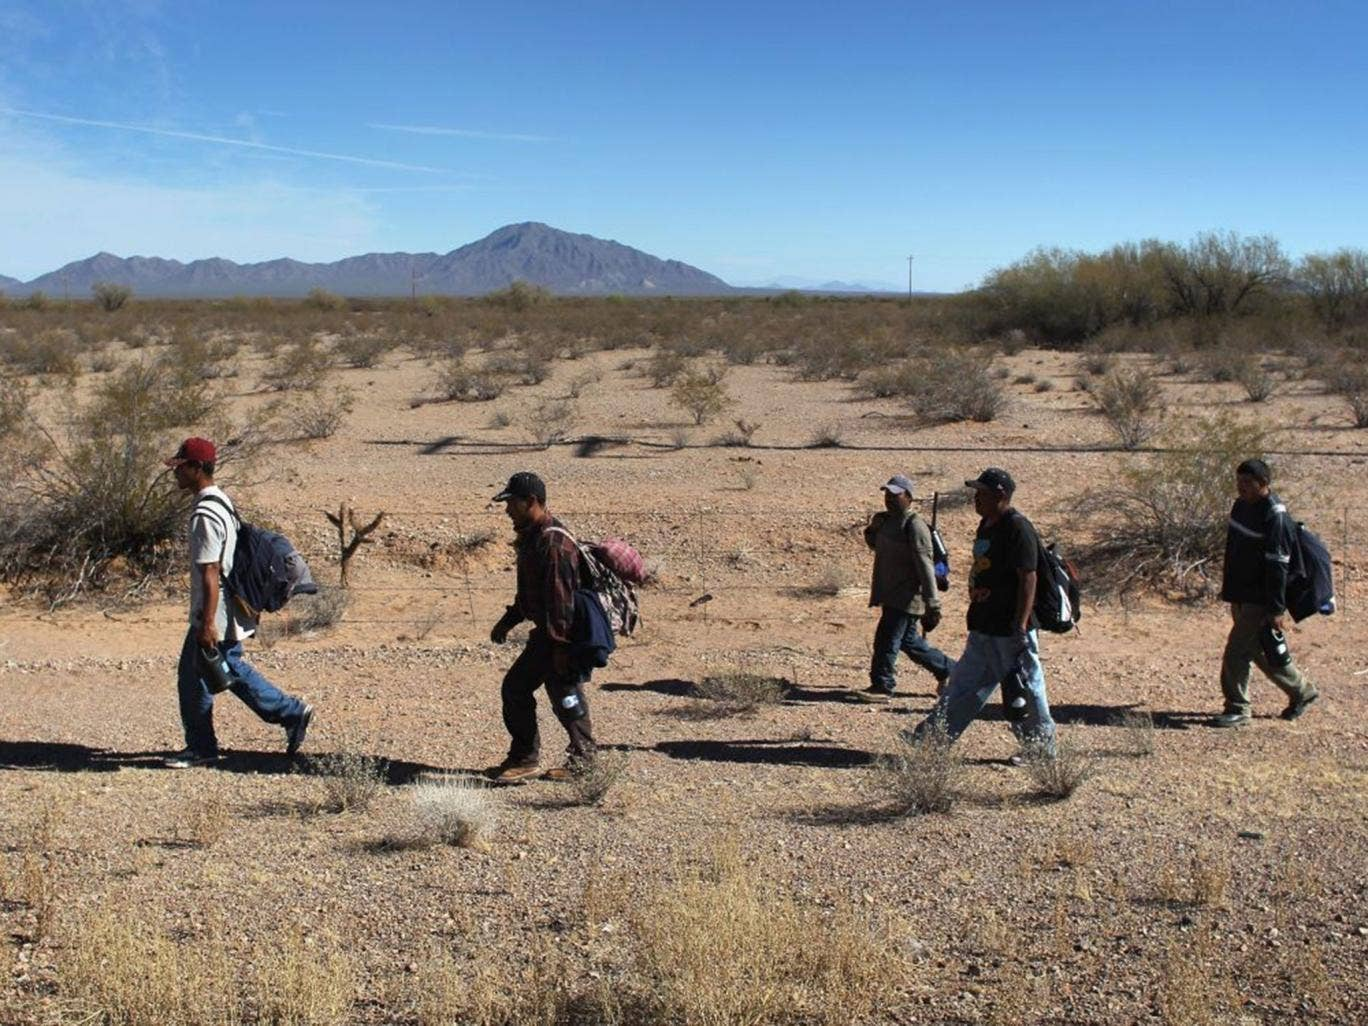 In the heat of the day: Illegal migrants walk through the Sonoran Desert after crossing into the US